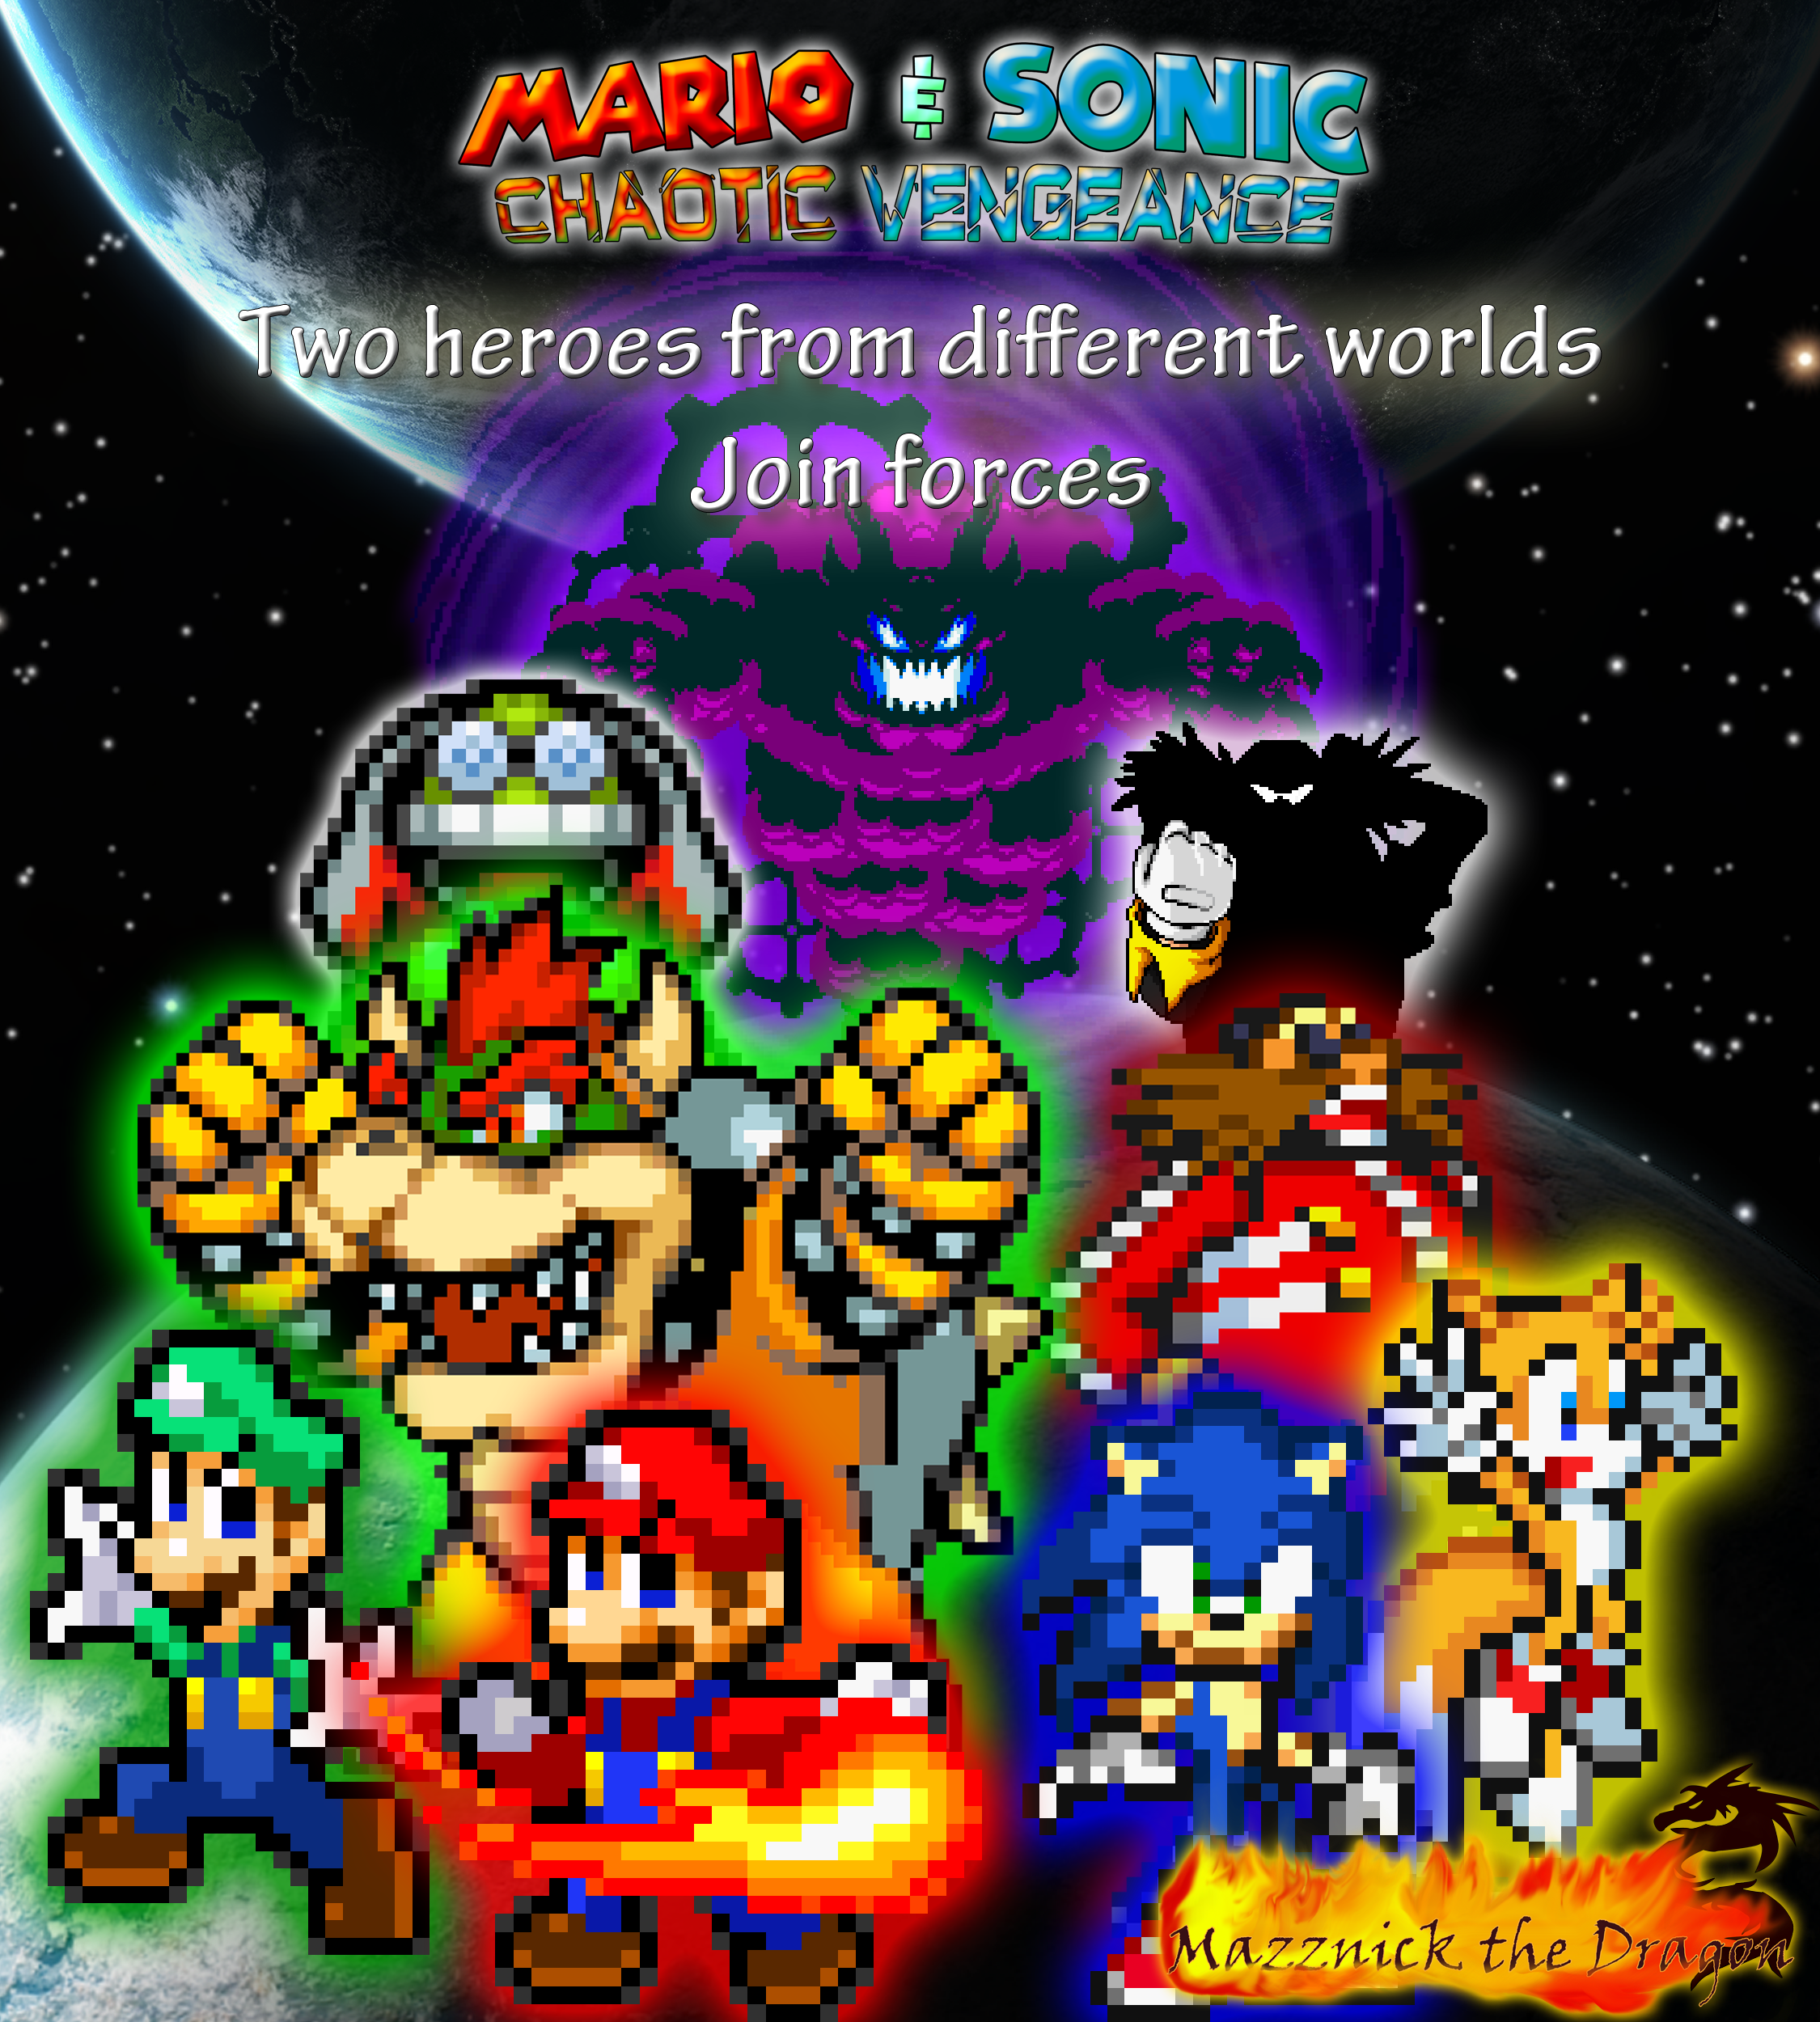 mario and sonic cv promotional poster by mazznick on